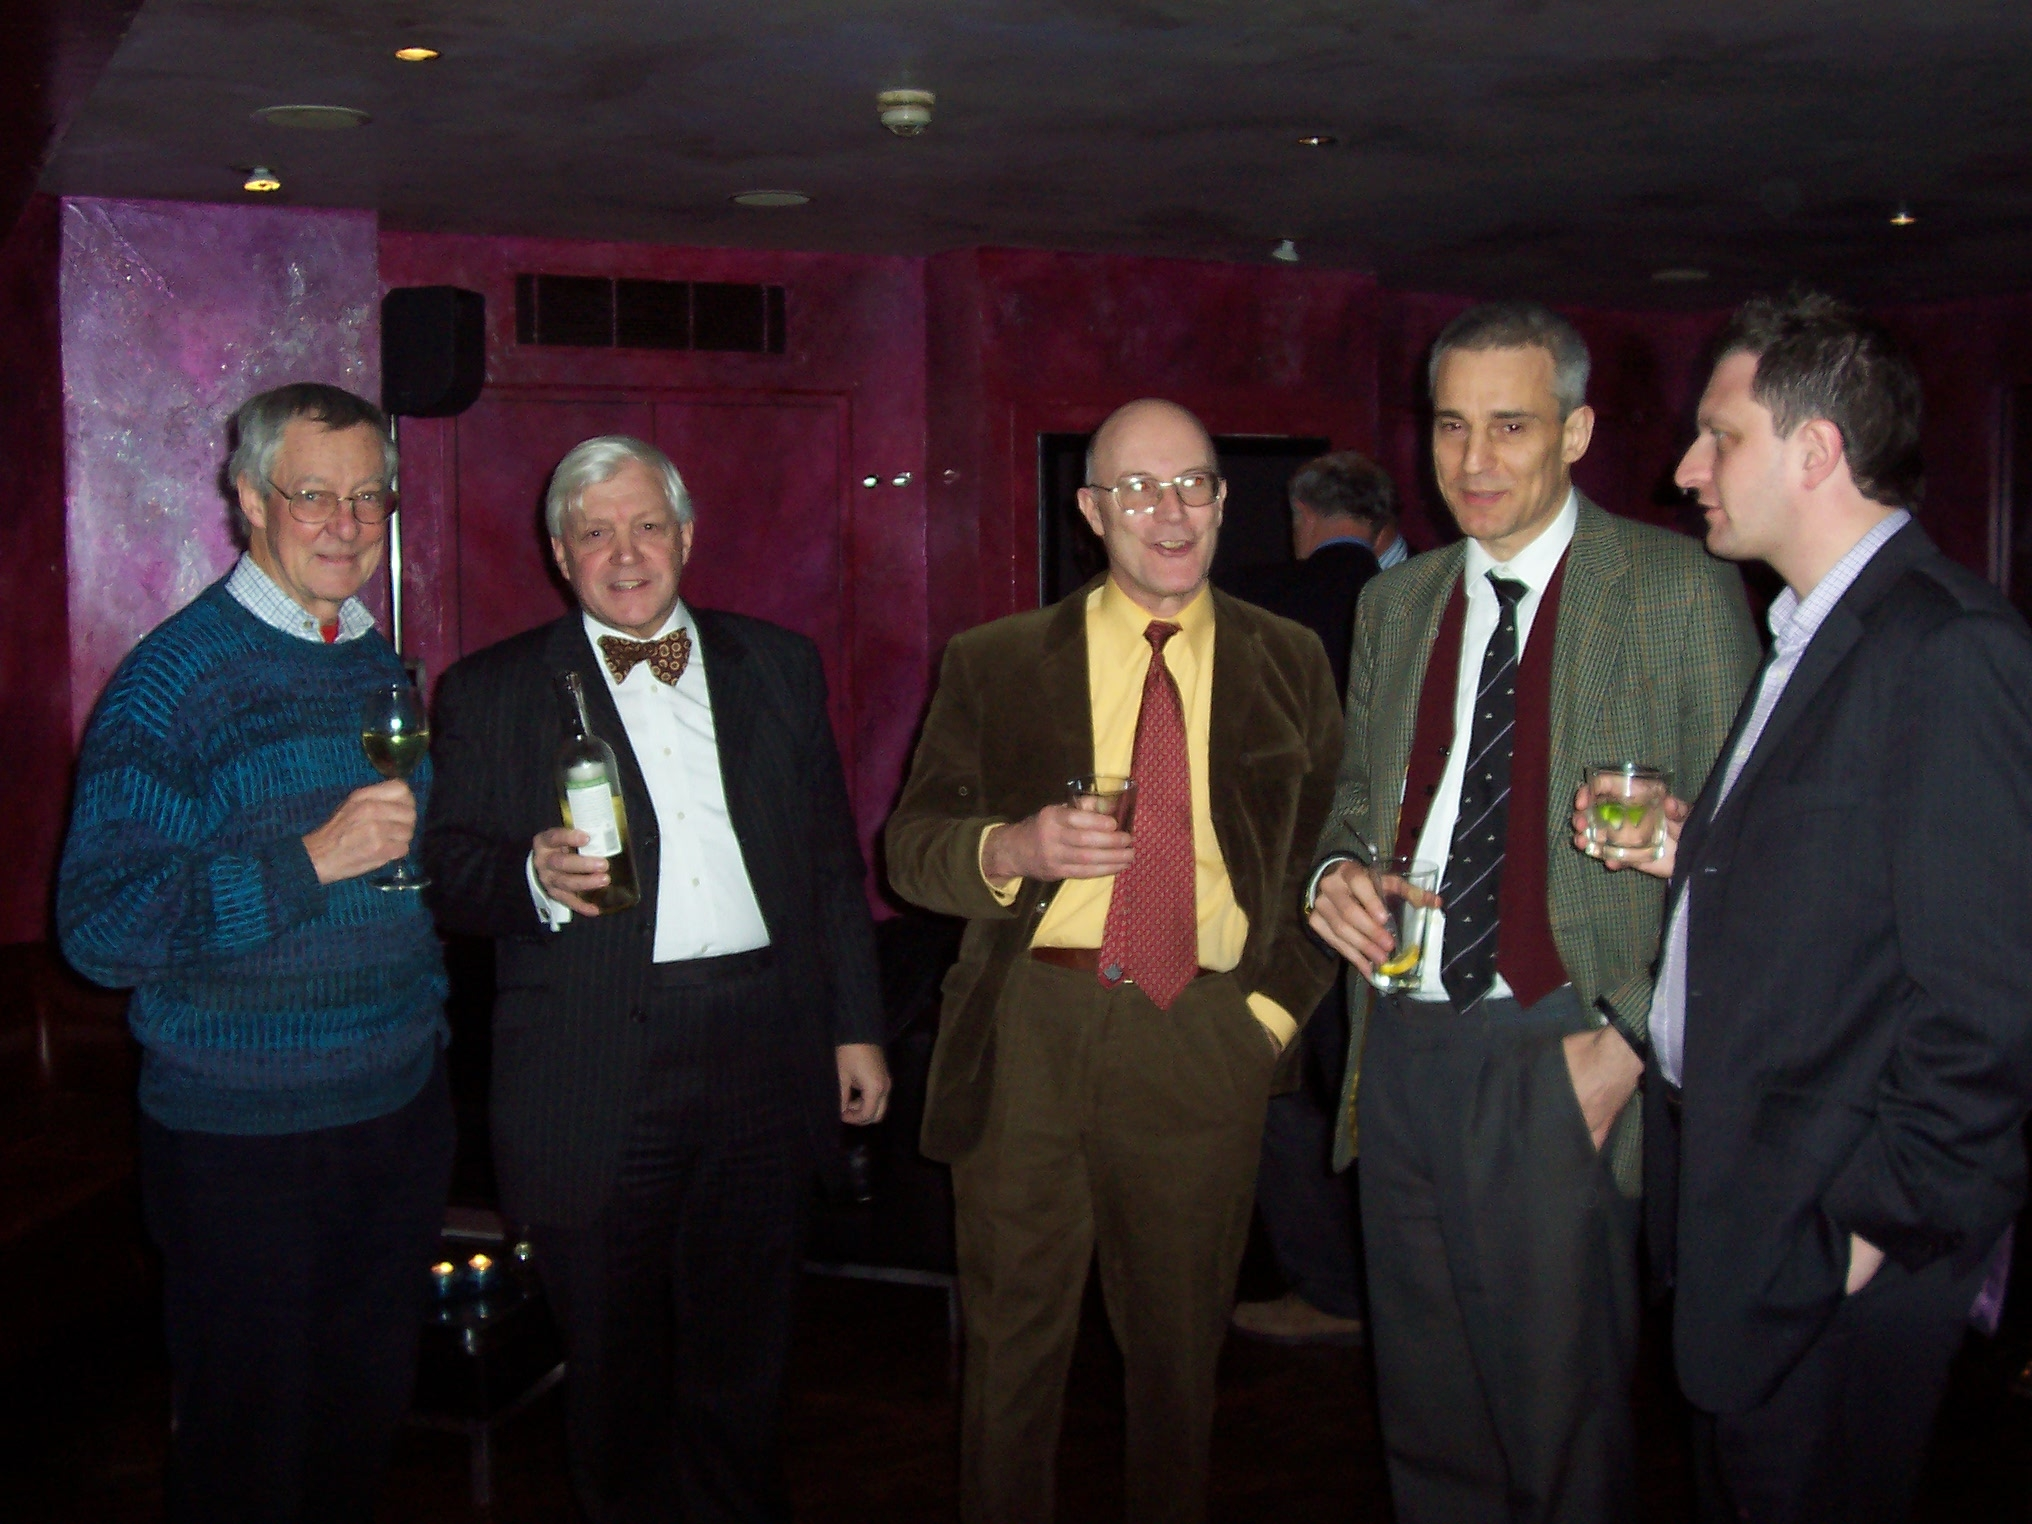 Simon Lanyon (C. 1951-56), Peter Cockburn (S.1959/64), Michael Bishop (C. 1960-65) James Brenan (S. 1972-77) and David Gold (S. 1986-91)